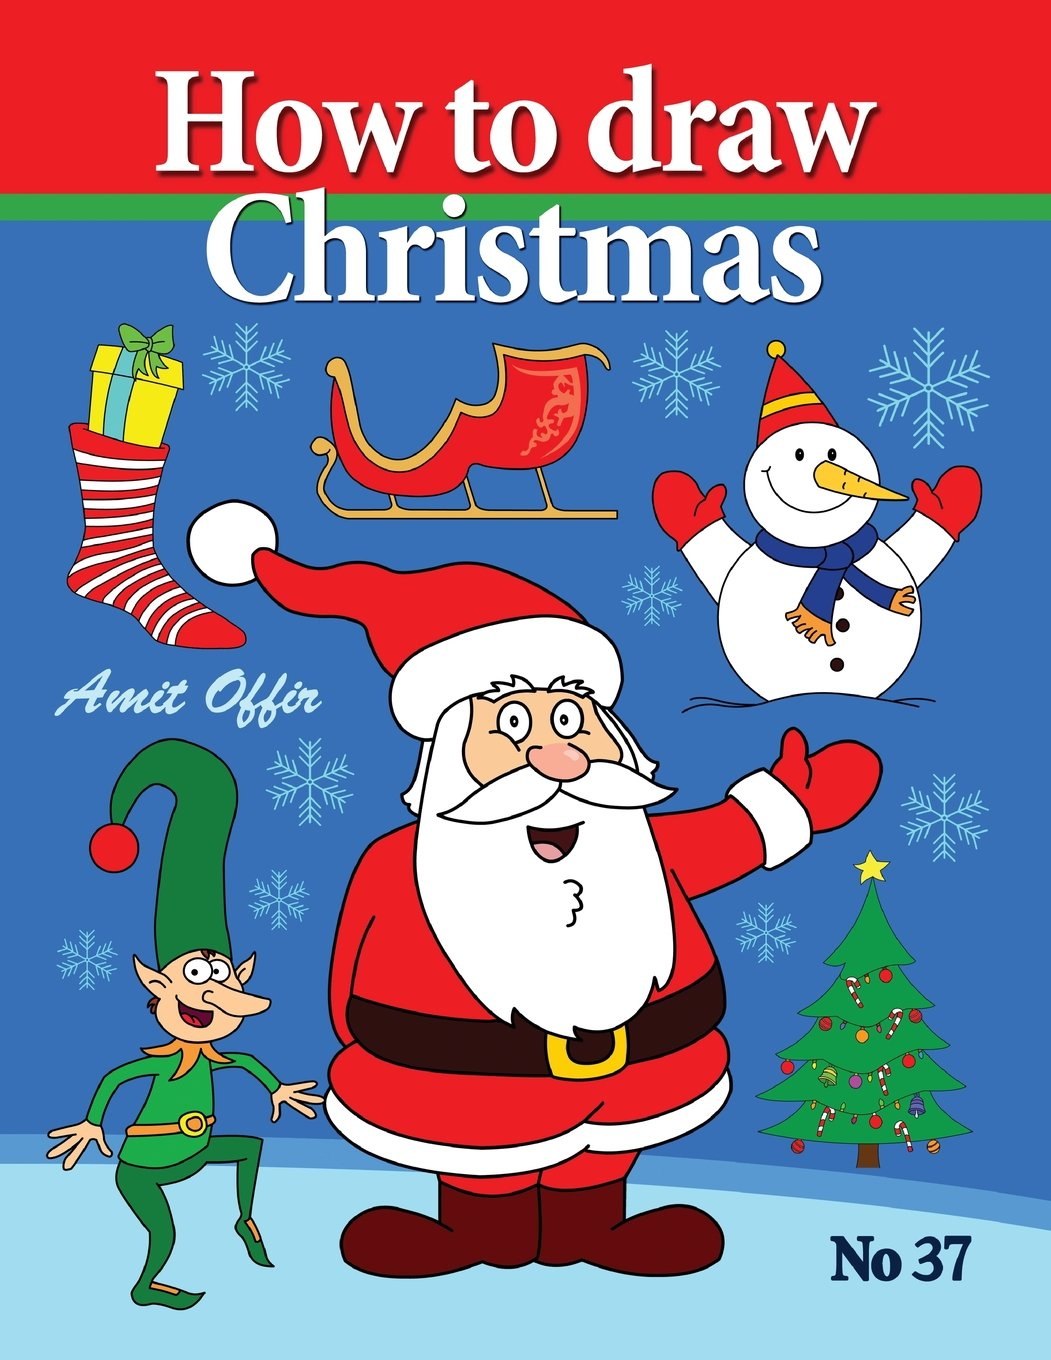 How To Draw Christmas Drawing Books Comics And Cartoon Characters Drawing Books For Kids And Adults That Will Teach You How To Draw Birds Step By Step Offir Amit Offir Amit How to draw cartoon trees step by step easy for beginners and kids tutorial. how to draw christmas drawing books